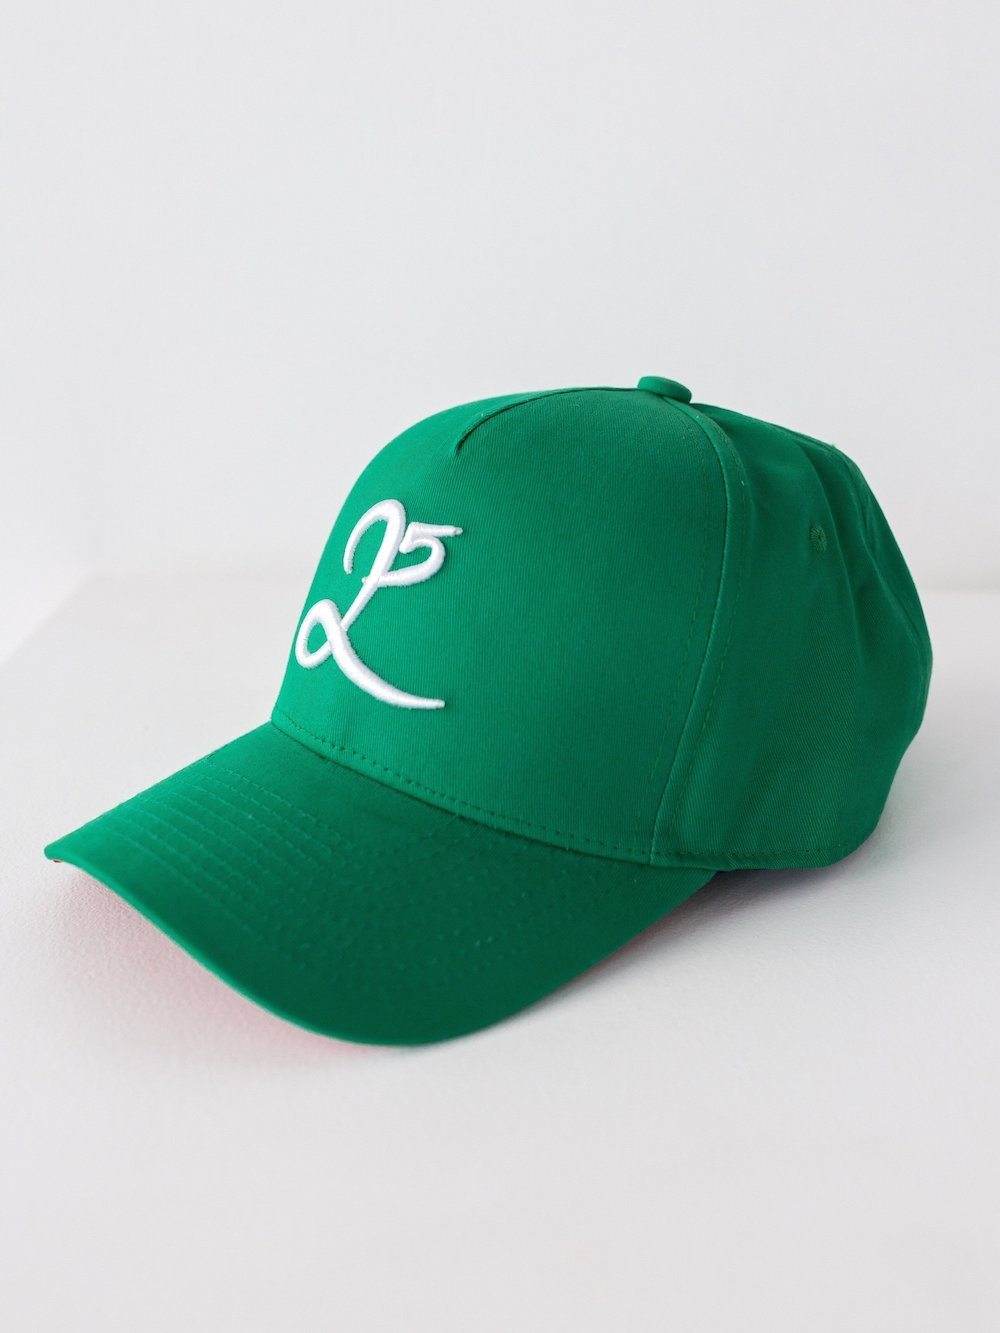 TwentyFive Fury V Edition Cap - Green